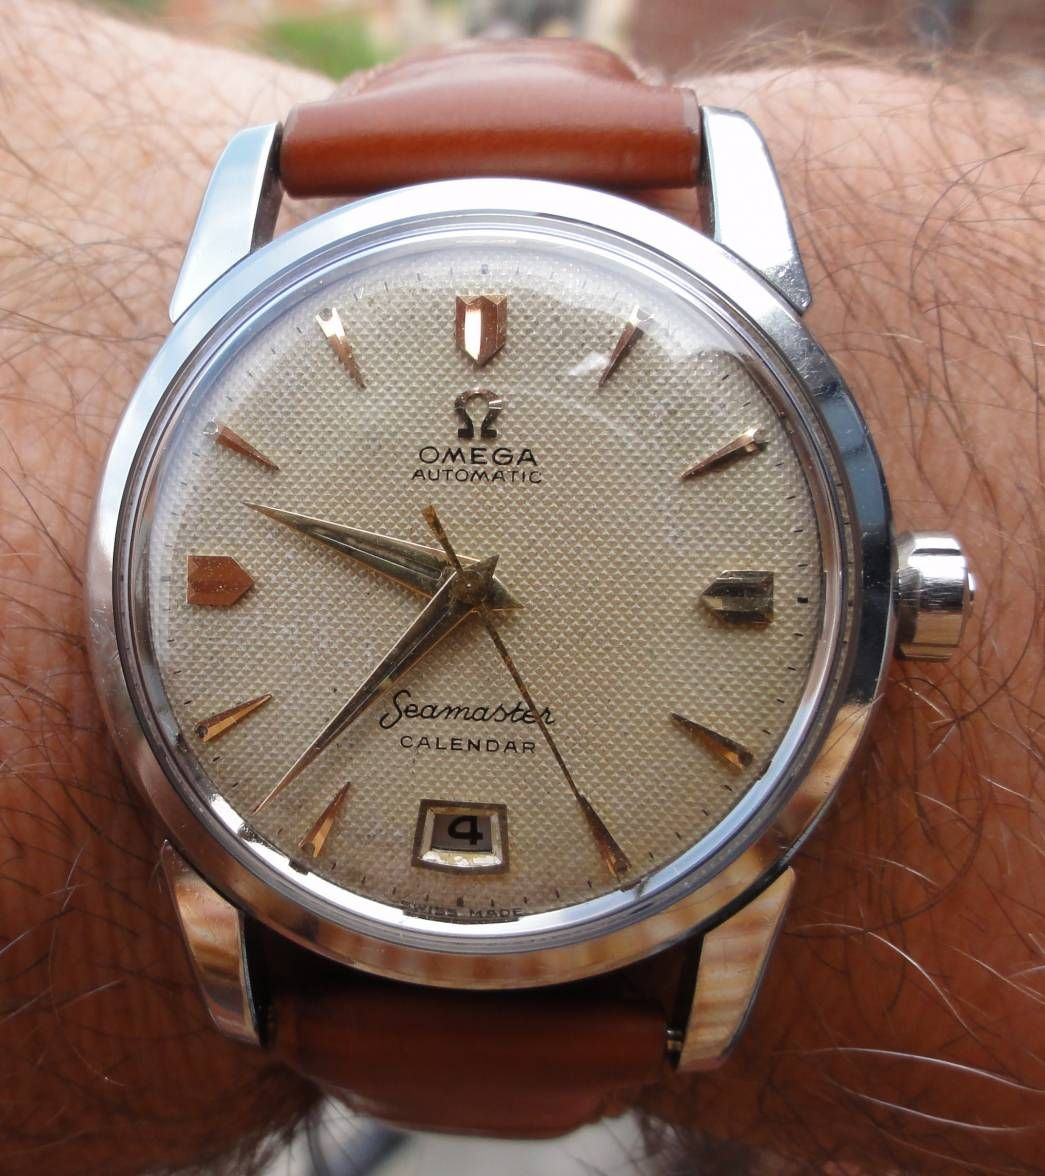 Superb Vintage Omega Seamaster Calendar With Date At Six In Bulova 90271 Jam Tangan Pria Silver Stainless Steel